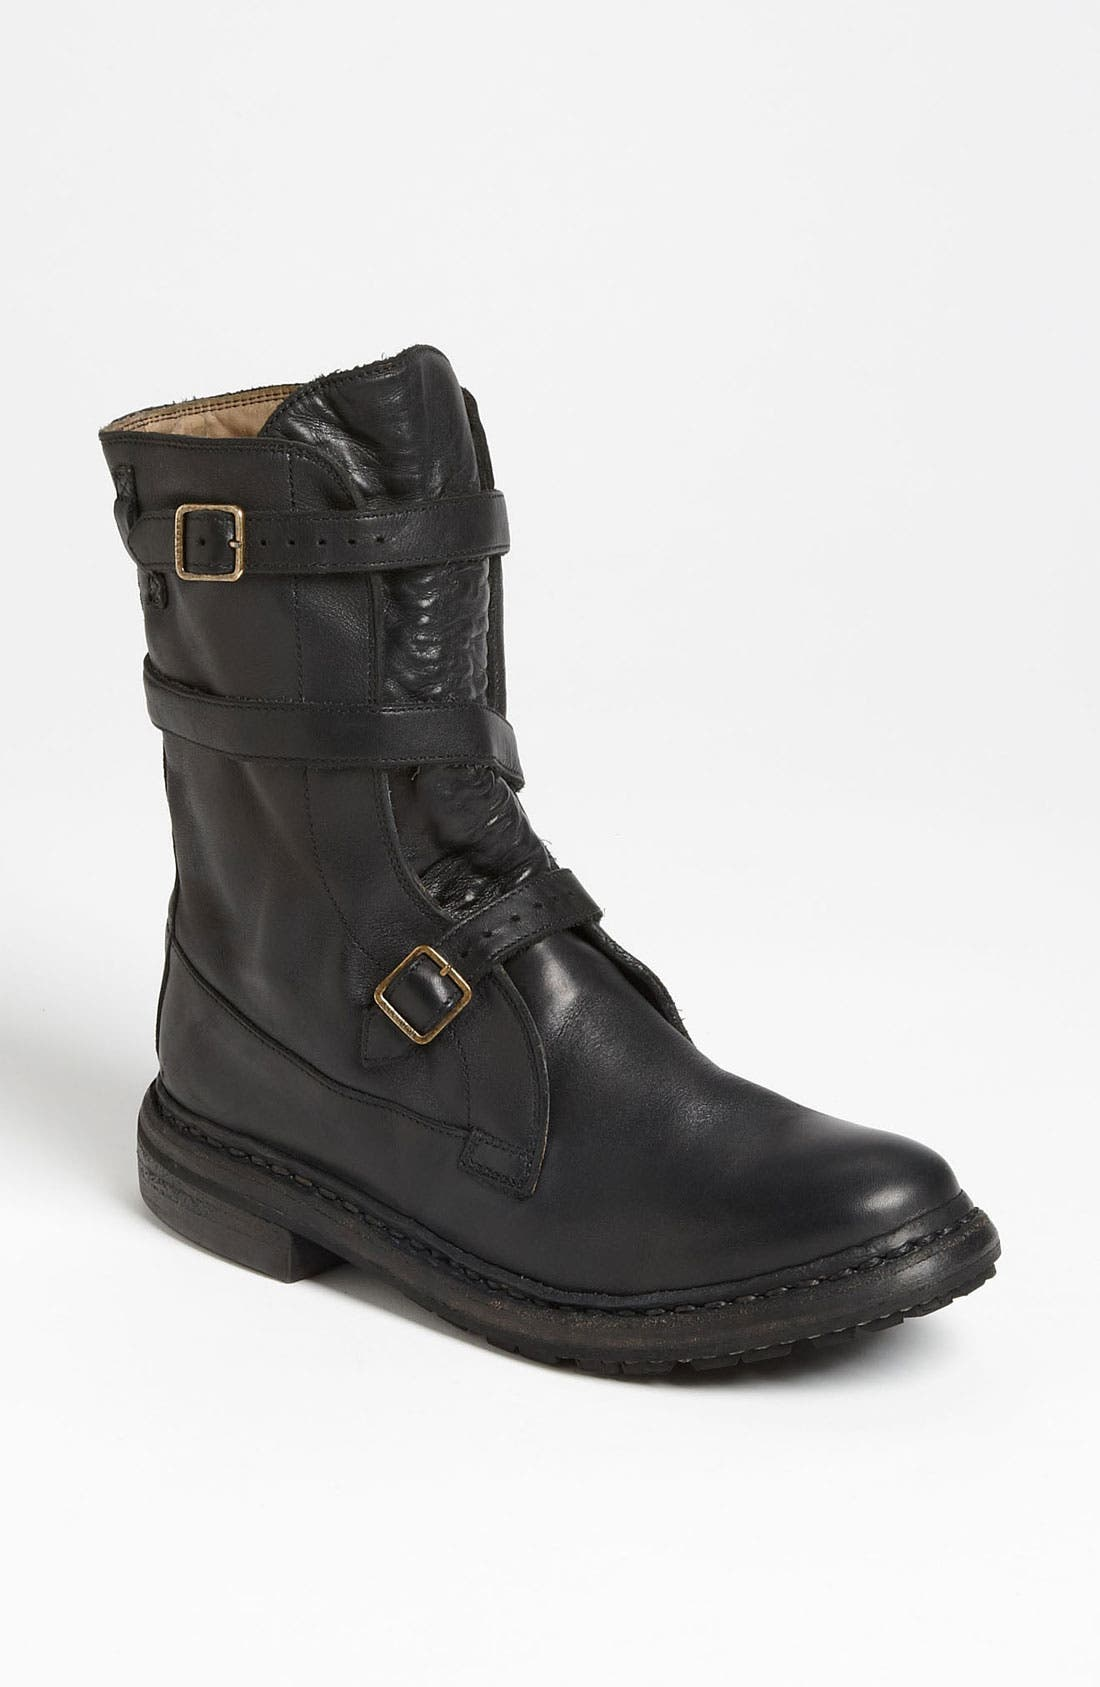 Alternate Image 1 Selected - Burberry 'Blanchard' Boot